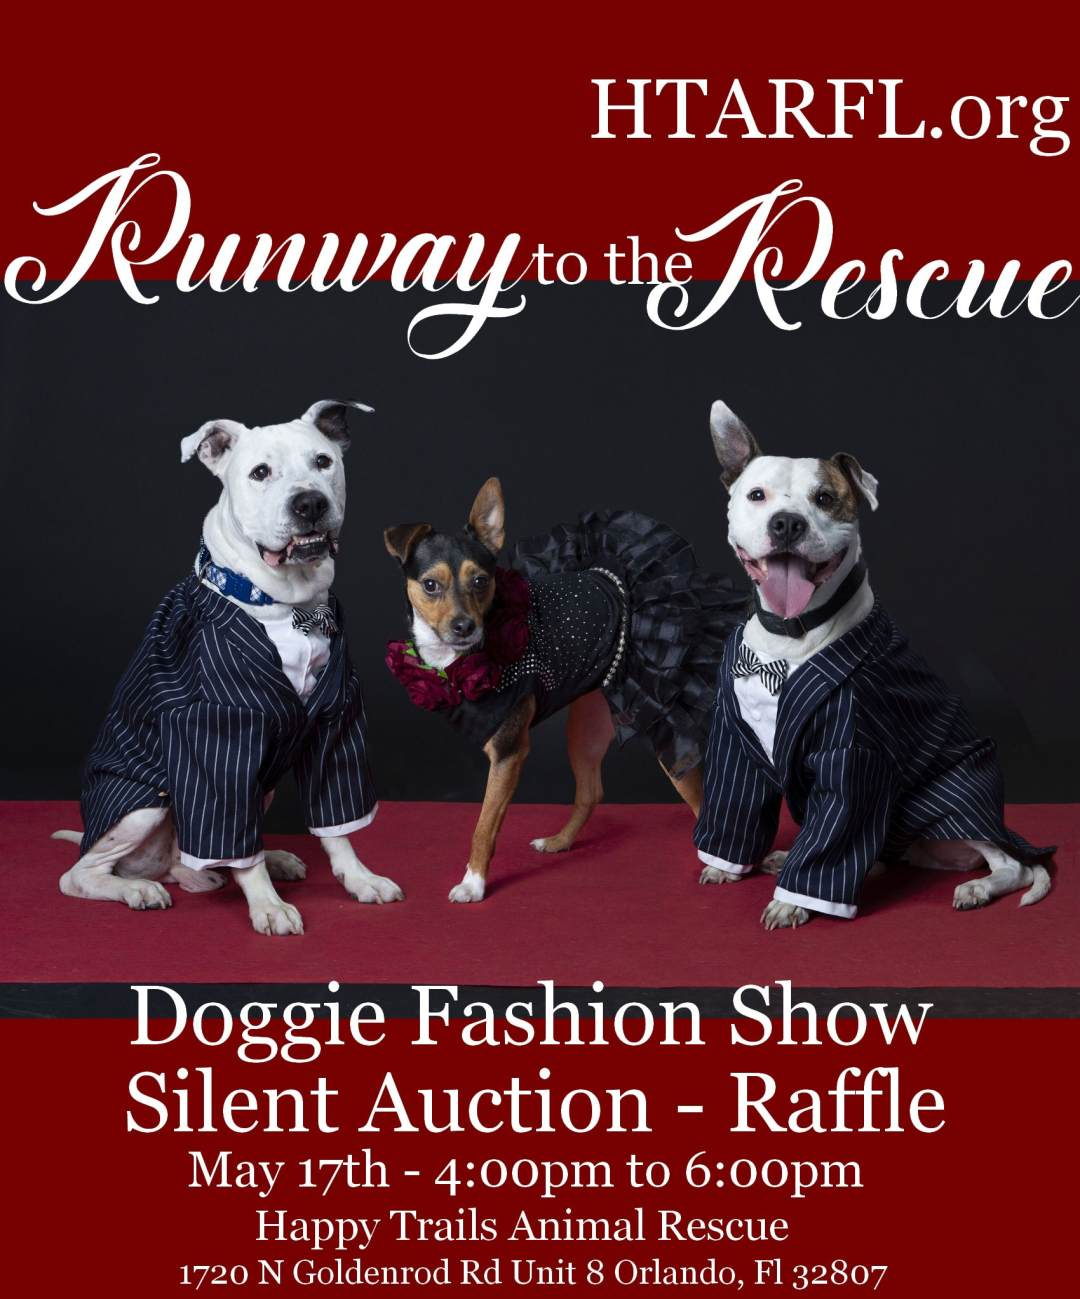 Runway to the Rescue Doggie Fashion Show